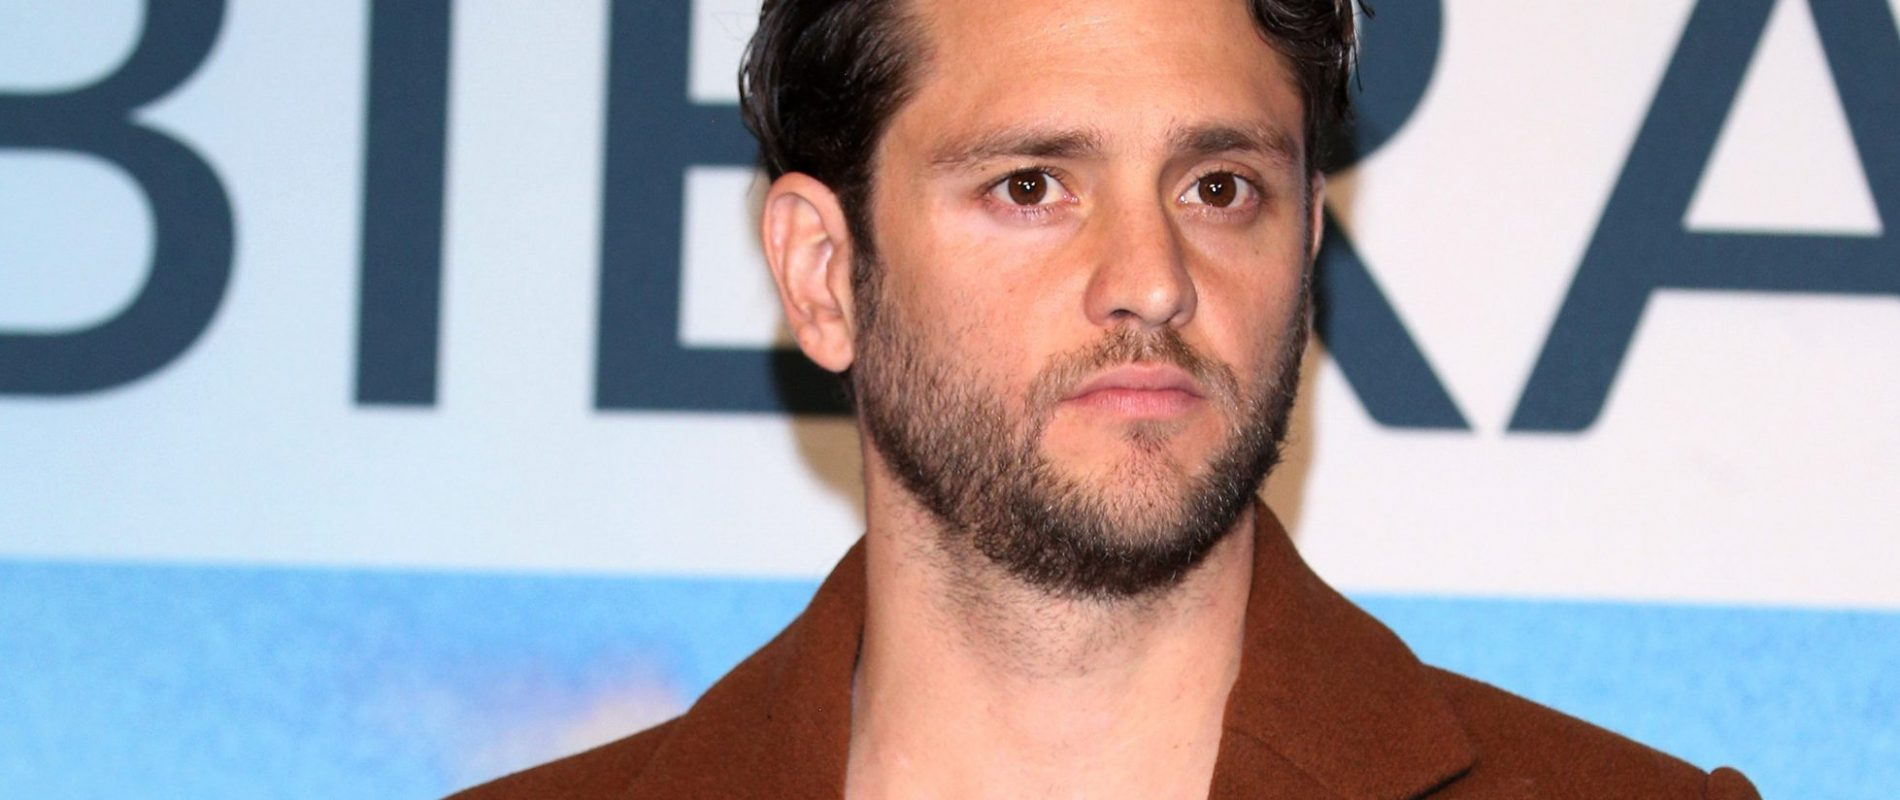 Christopher Uckermann se declara antivacunas